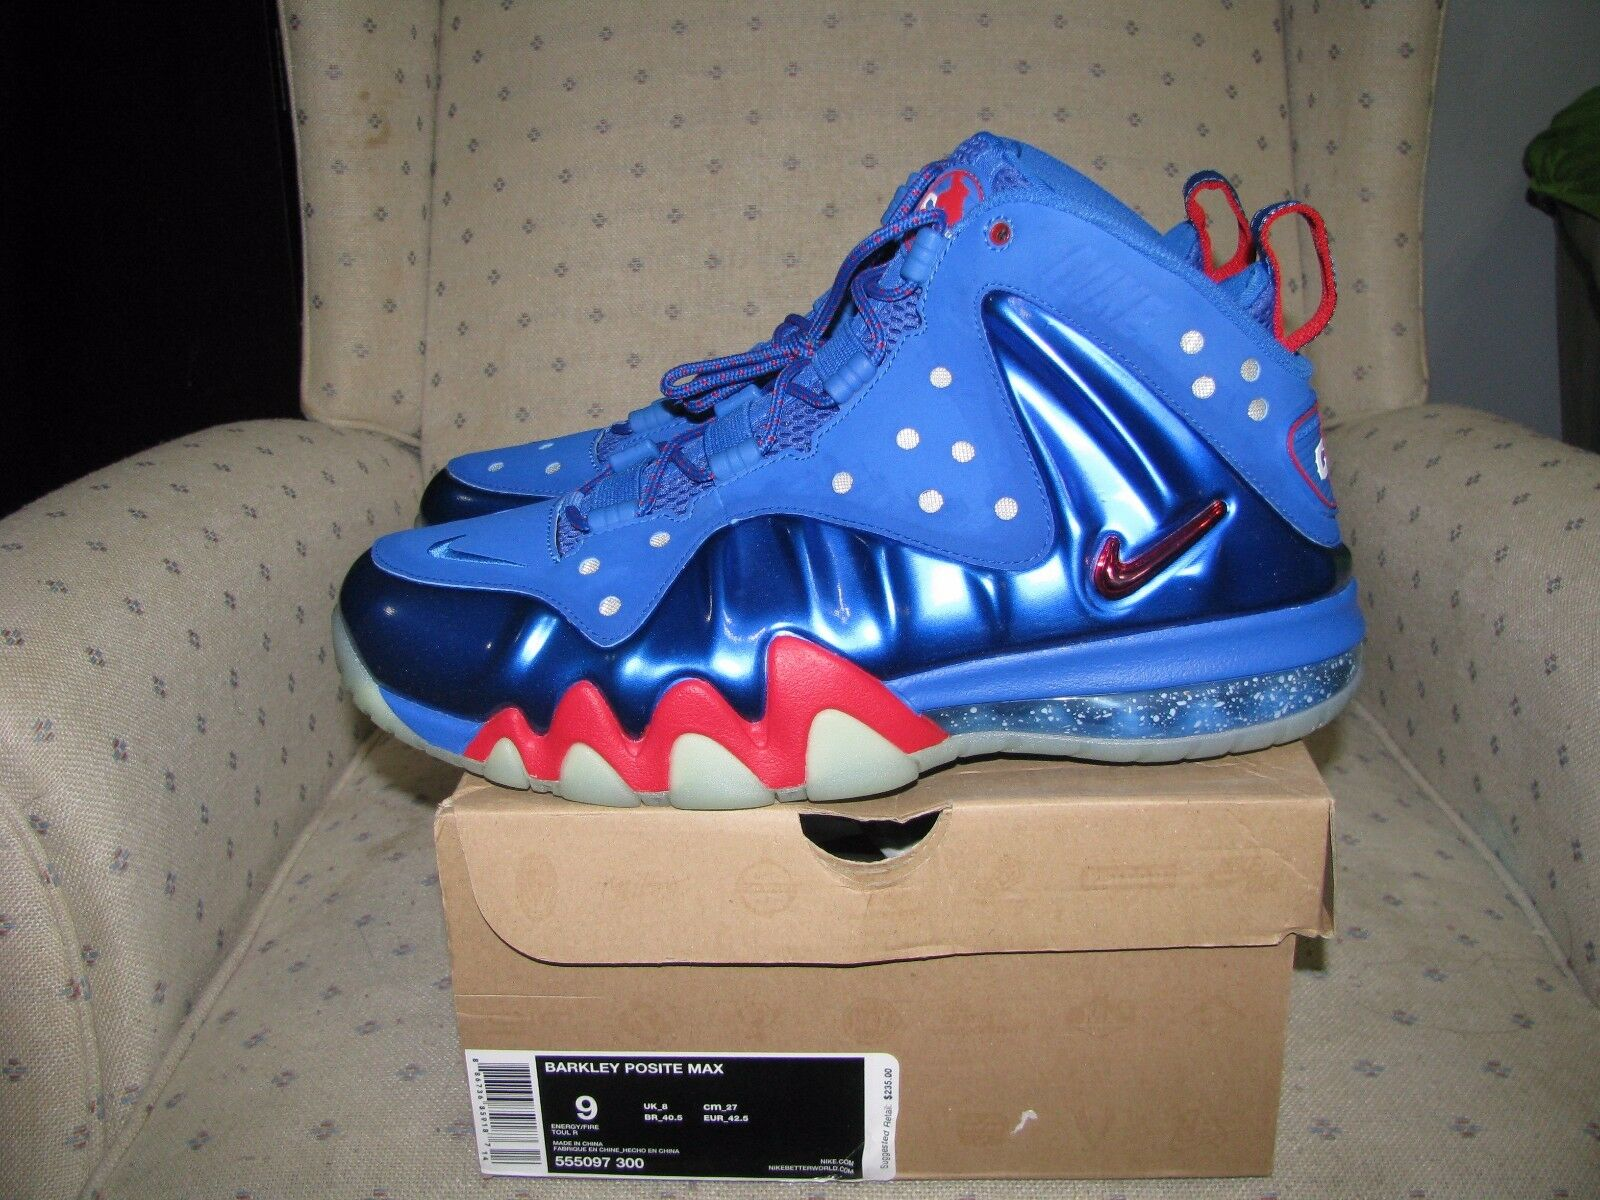 e408e69f06a7 Nike Air Barkley Posite Foamposite Max 1 76ers Sixers Energy Blue ...